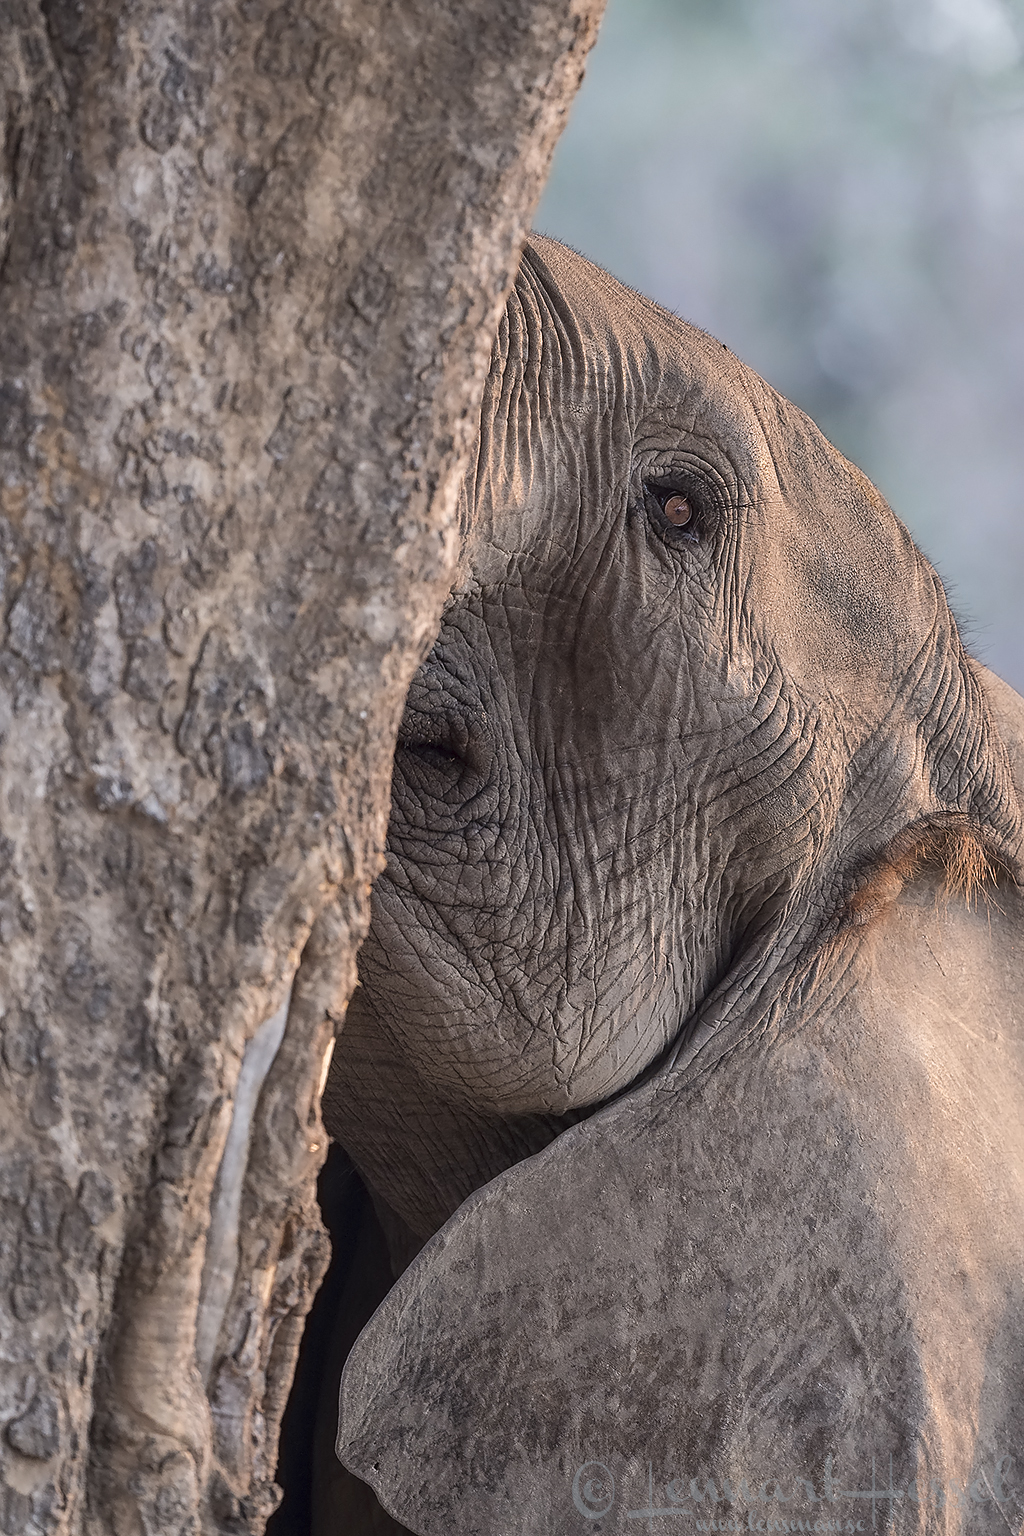 The eye of an Elephant Mana Pools National Park